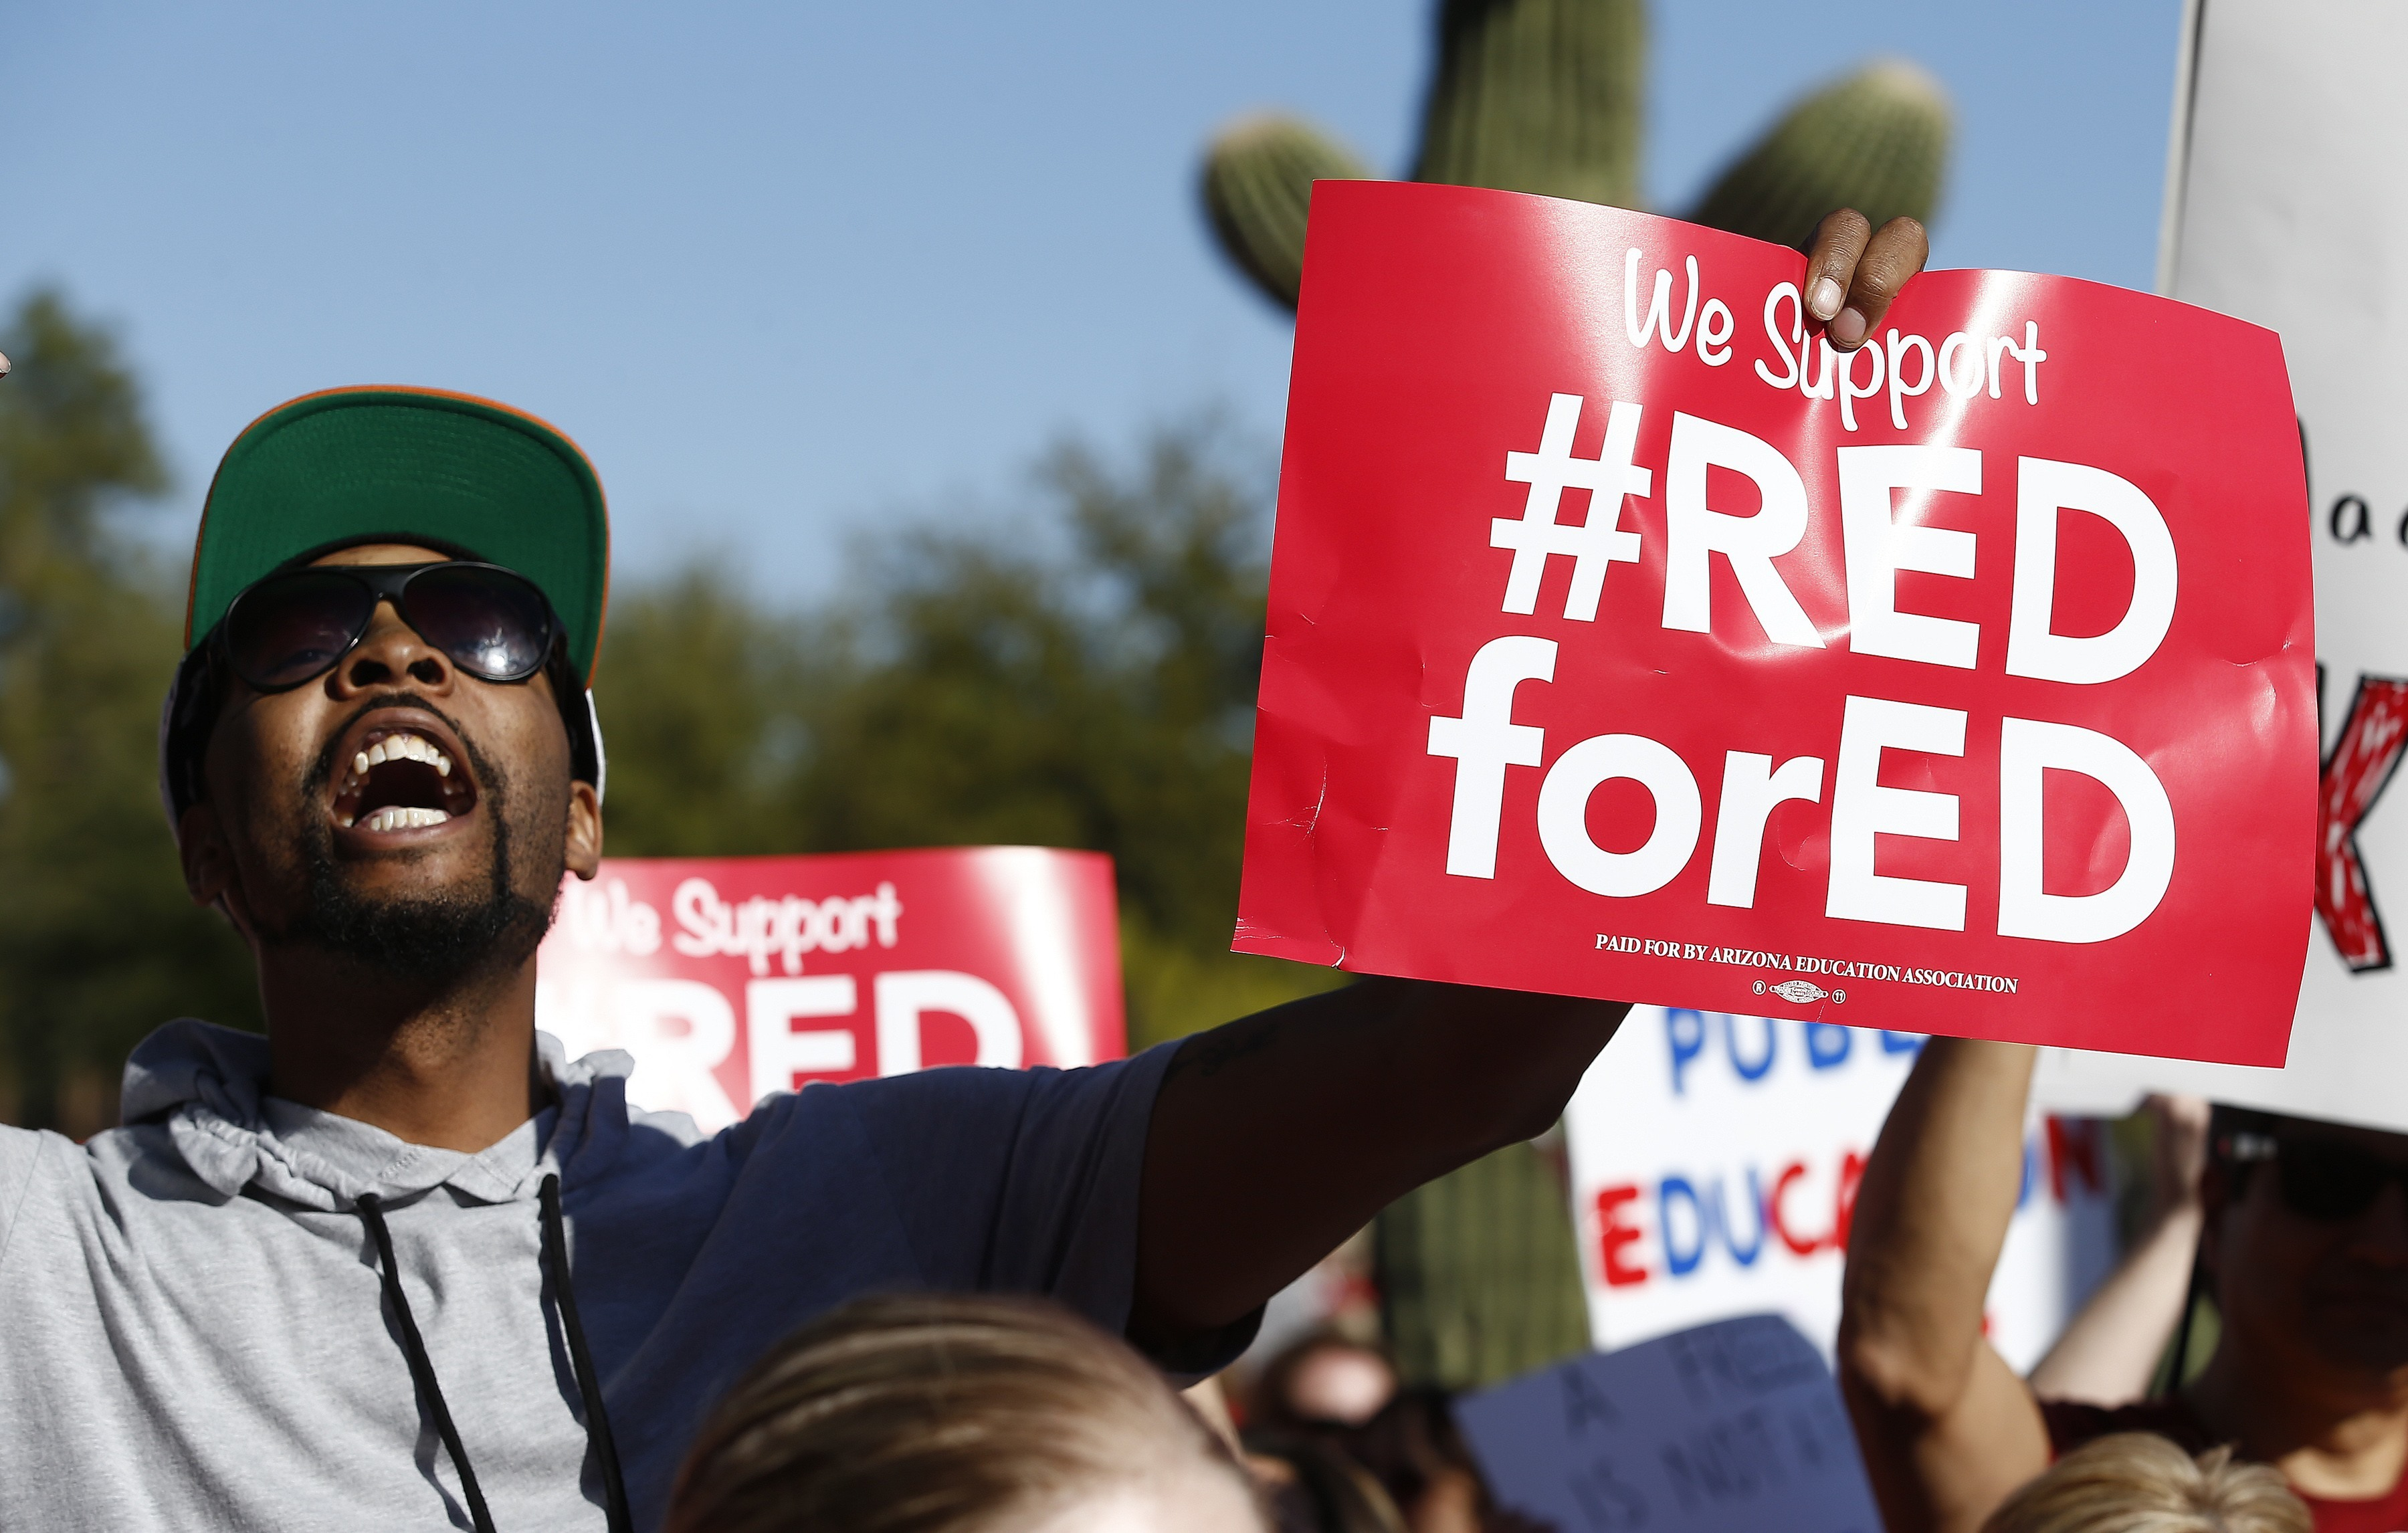 Arizona teachers and education advocates shouts as they march at the Arizona Capitol highlighting low teacher pay and school funding Wednesday, March 28, 2018, in Phoenix. (AP Photo/Ross D. Franklin)